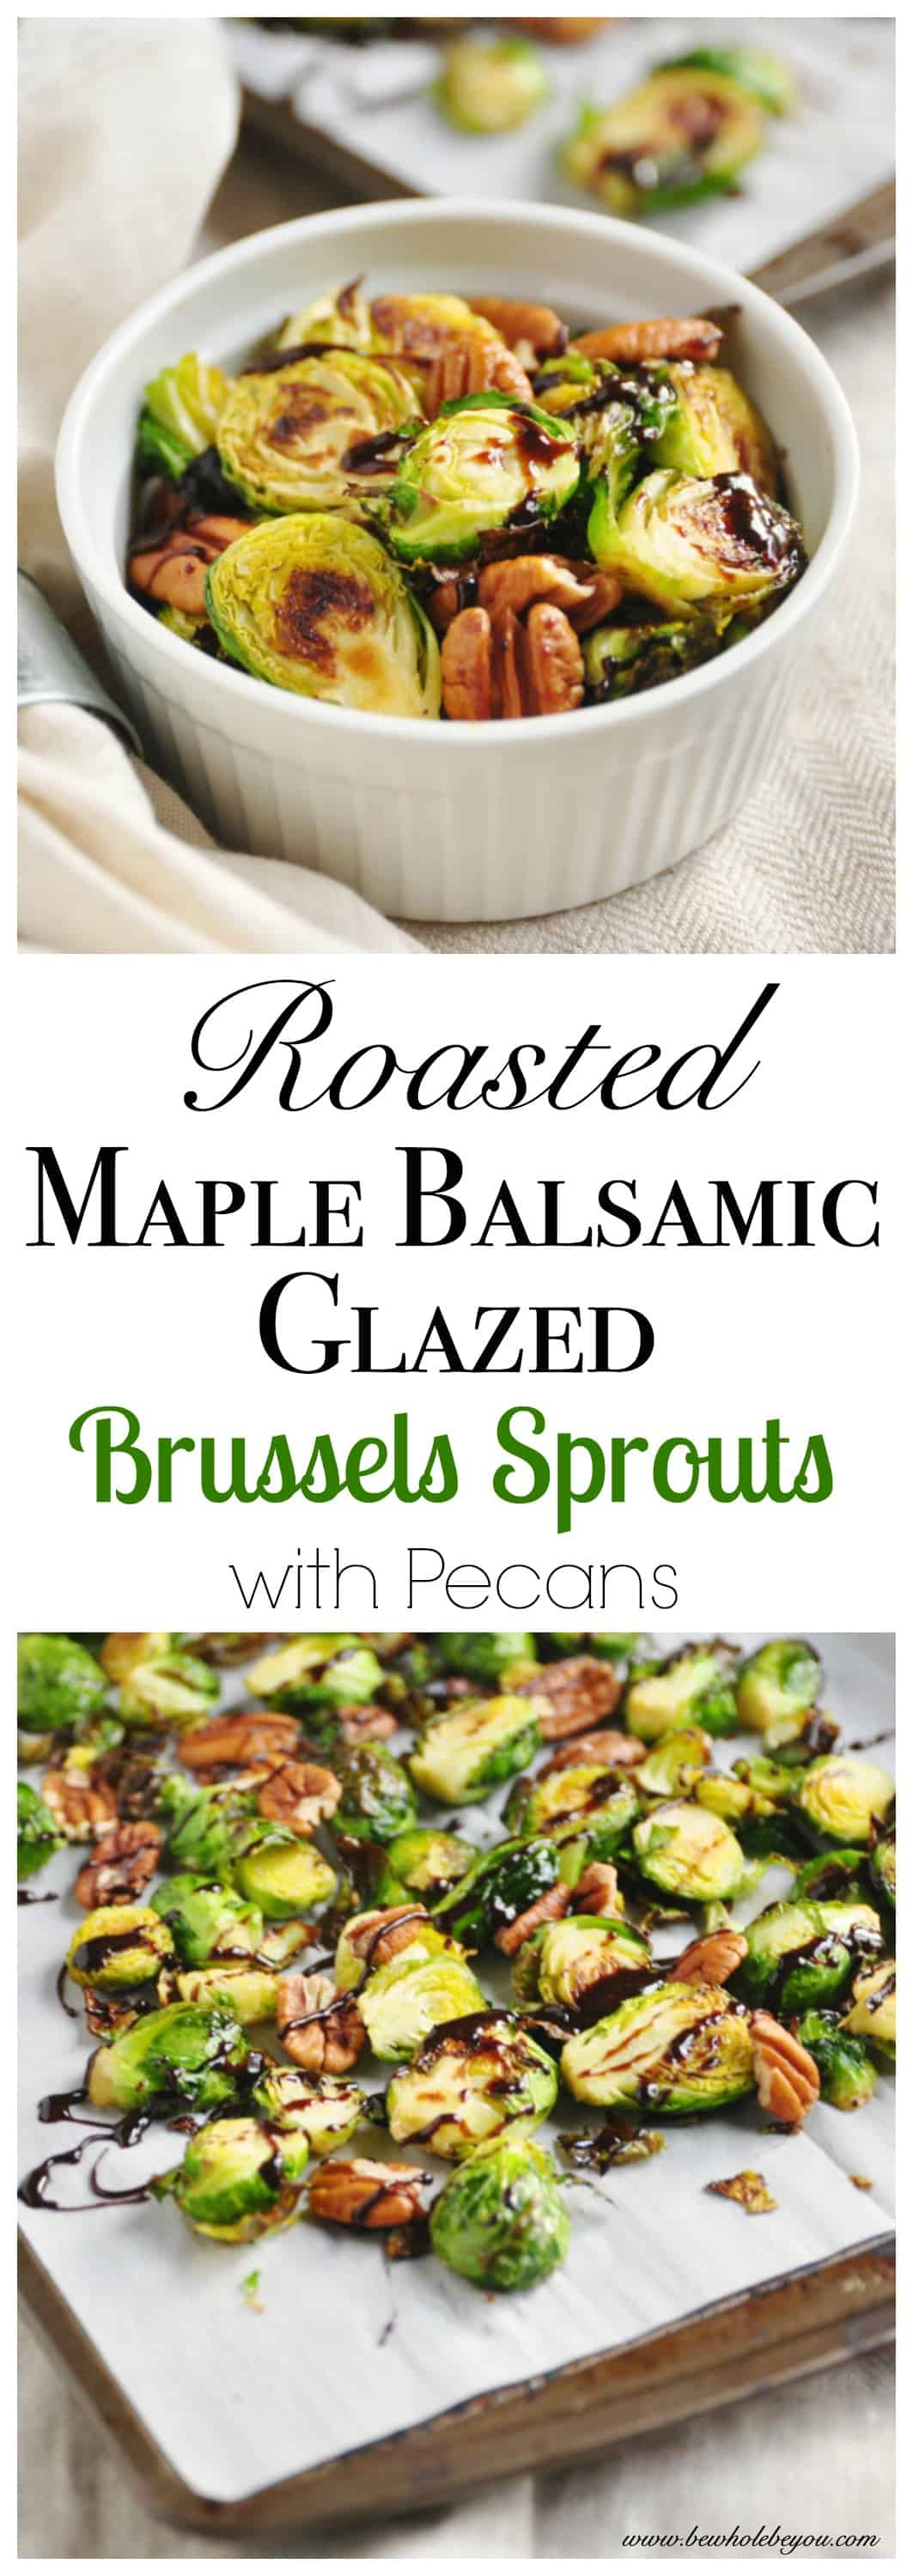 Roasted Maple Balsamic Glazed Brussels Sprouts with Pecan.